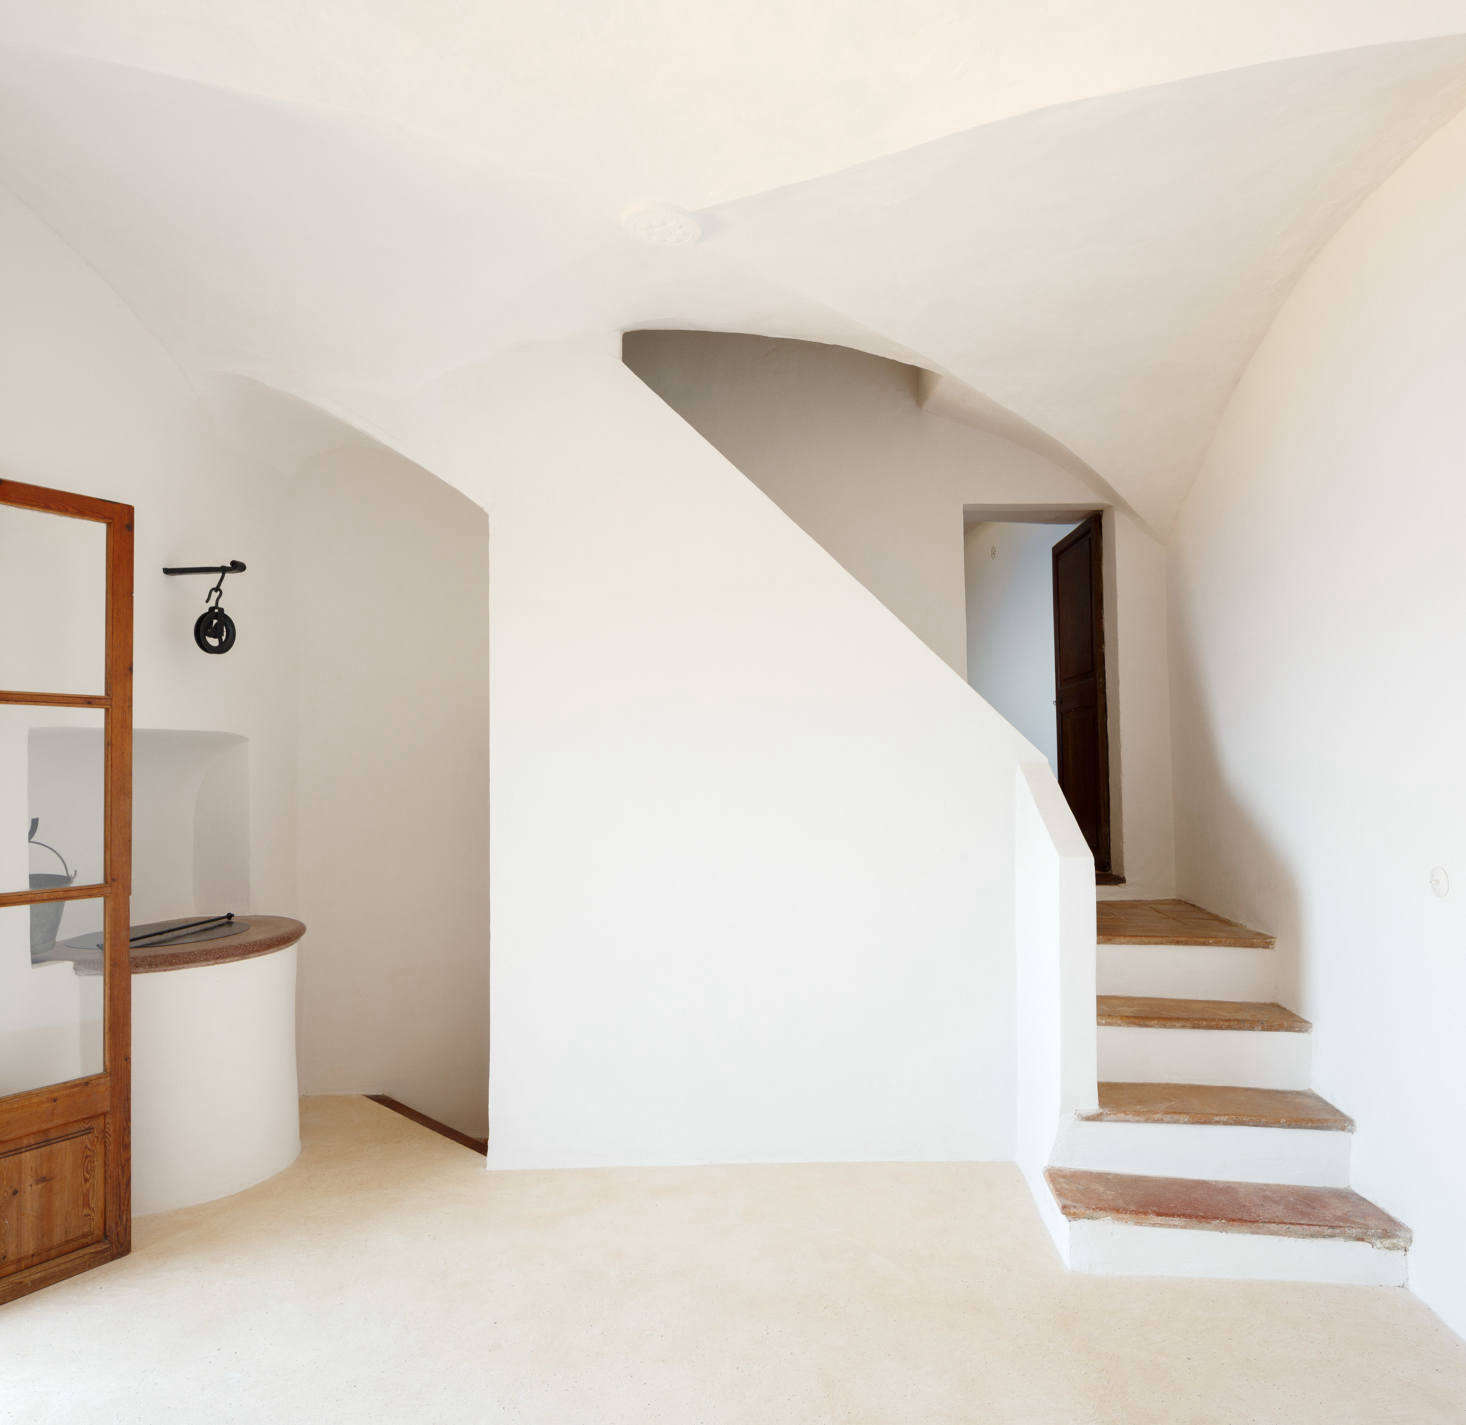 Two stairways lead to the other rooms: one bathroom, two bedrooms, a &#8